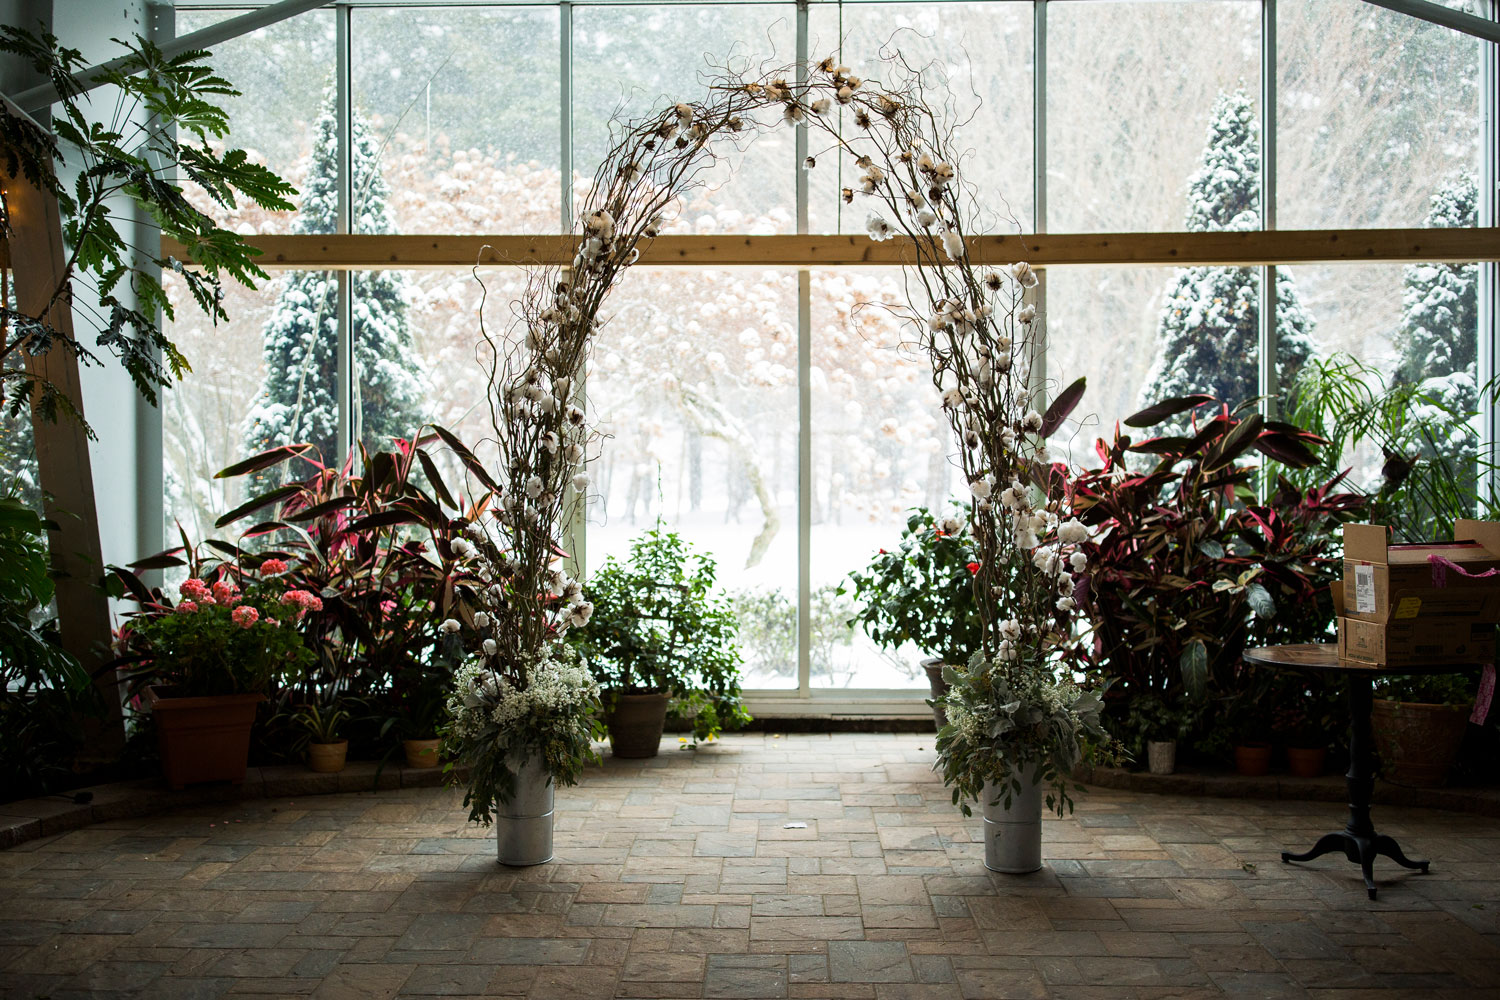 Flowerfield   Wedding & Event Venue on dining room designs, greenspace designs, flower bed designs, eco friendly house designs, cold frame designs, swimming pool designs, glass roof designs, aviary designs, solar oven designs, construction designs, shed designs, garden designs, sunroom designs, eco-friendly home designs, lean to house designs, green designs, walled courtyard designs, summer house designs, chicken coop designs, environmentally friendly house designs,